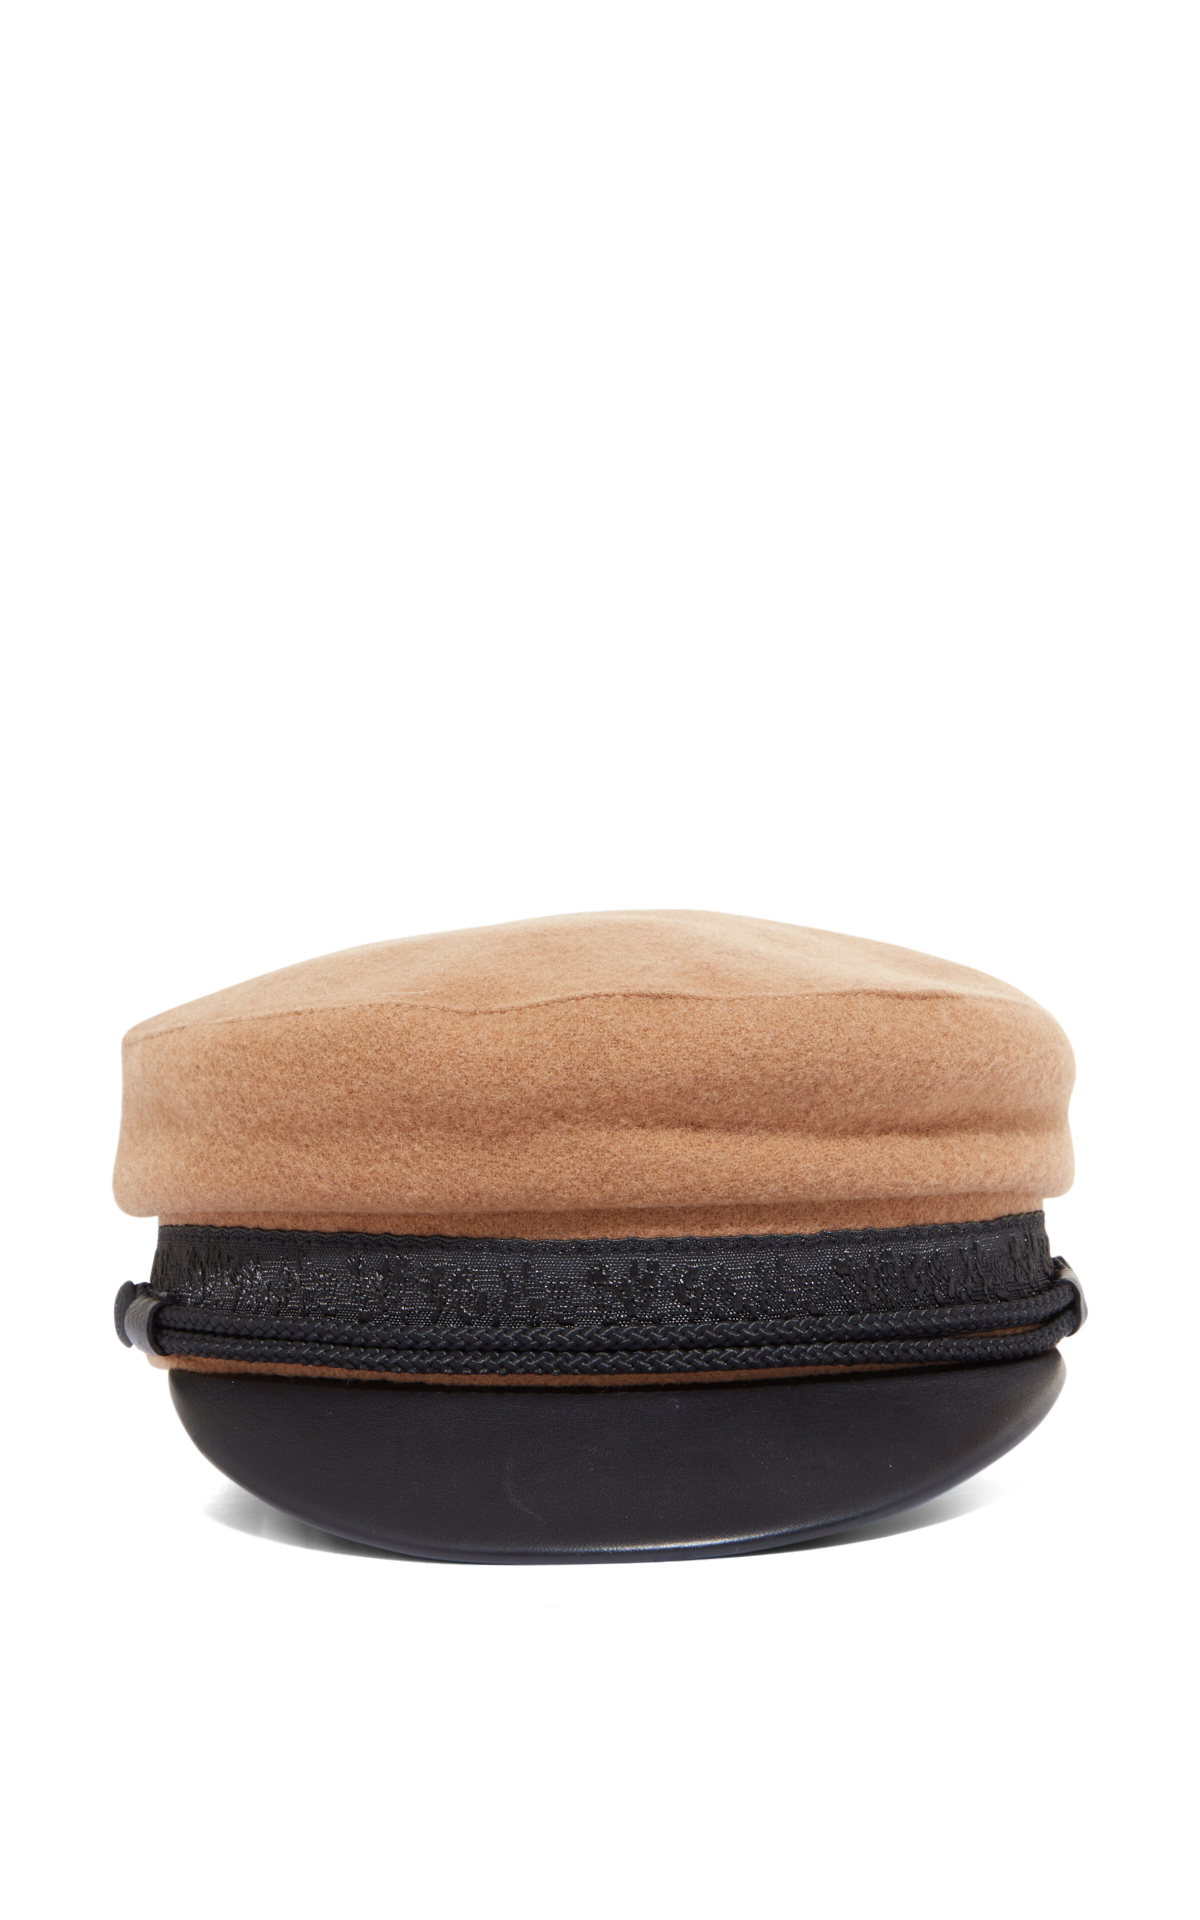 The Kooples Beret Camel la vallée village